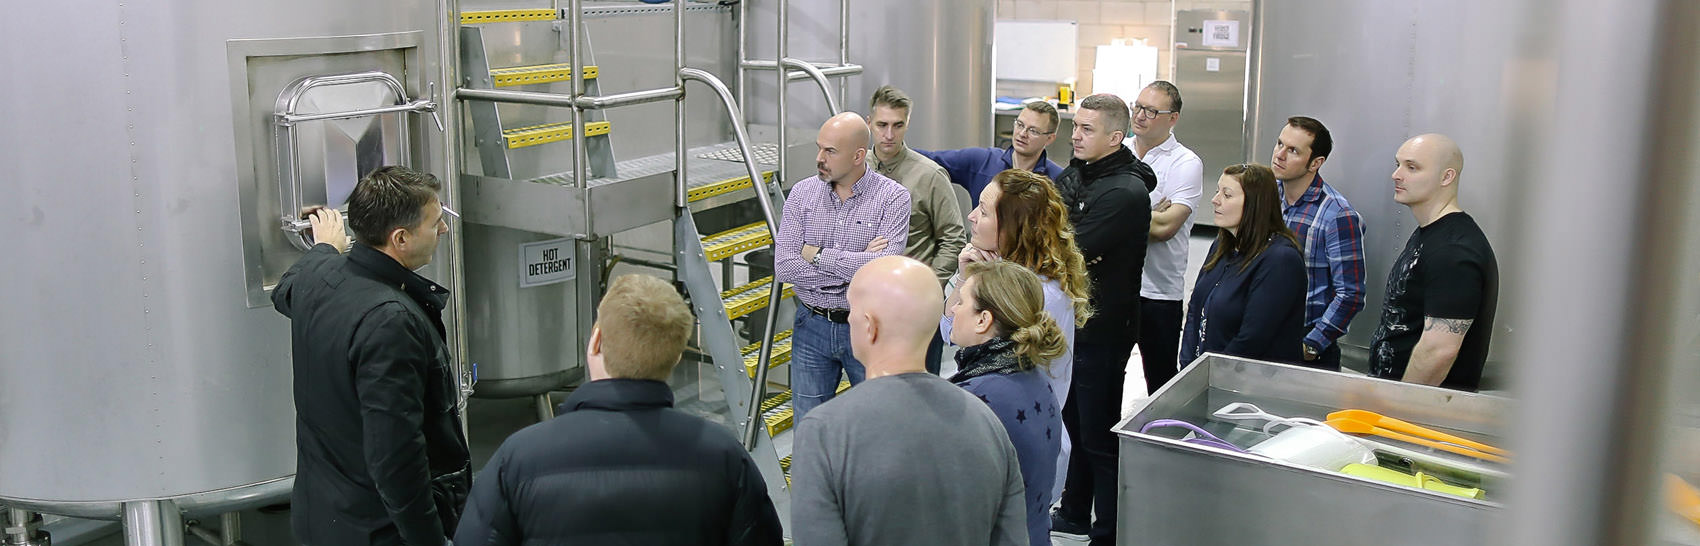 BUSINESS MEETING AND BREWERY TOURS